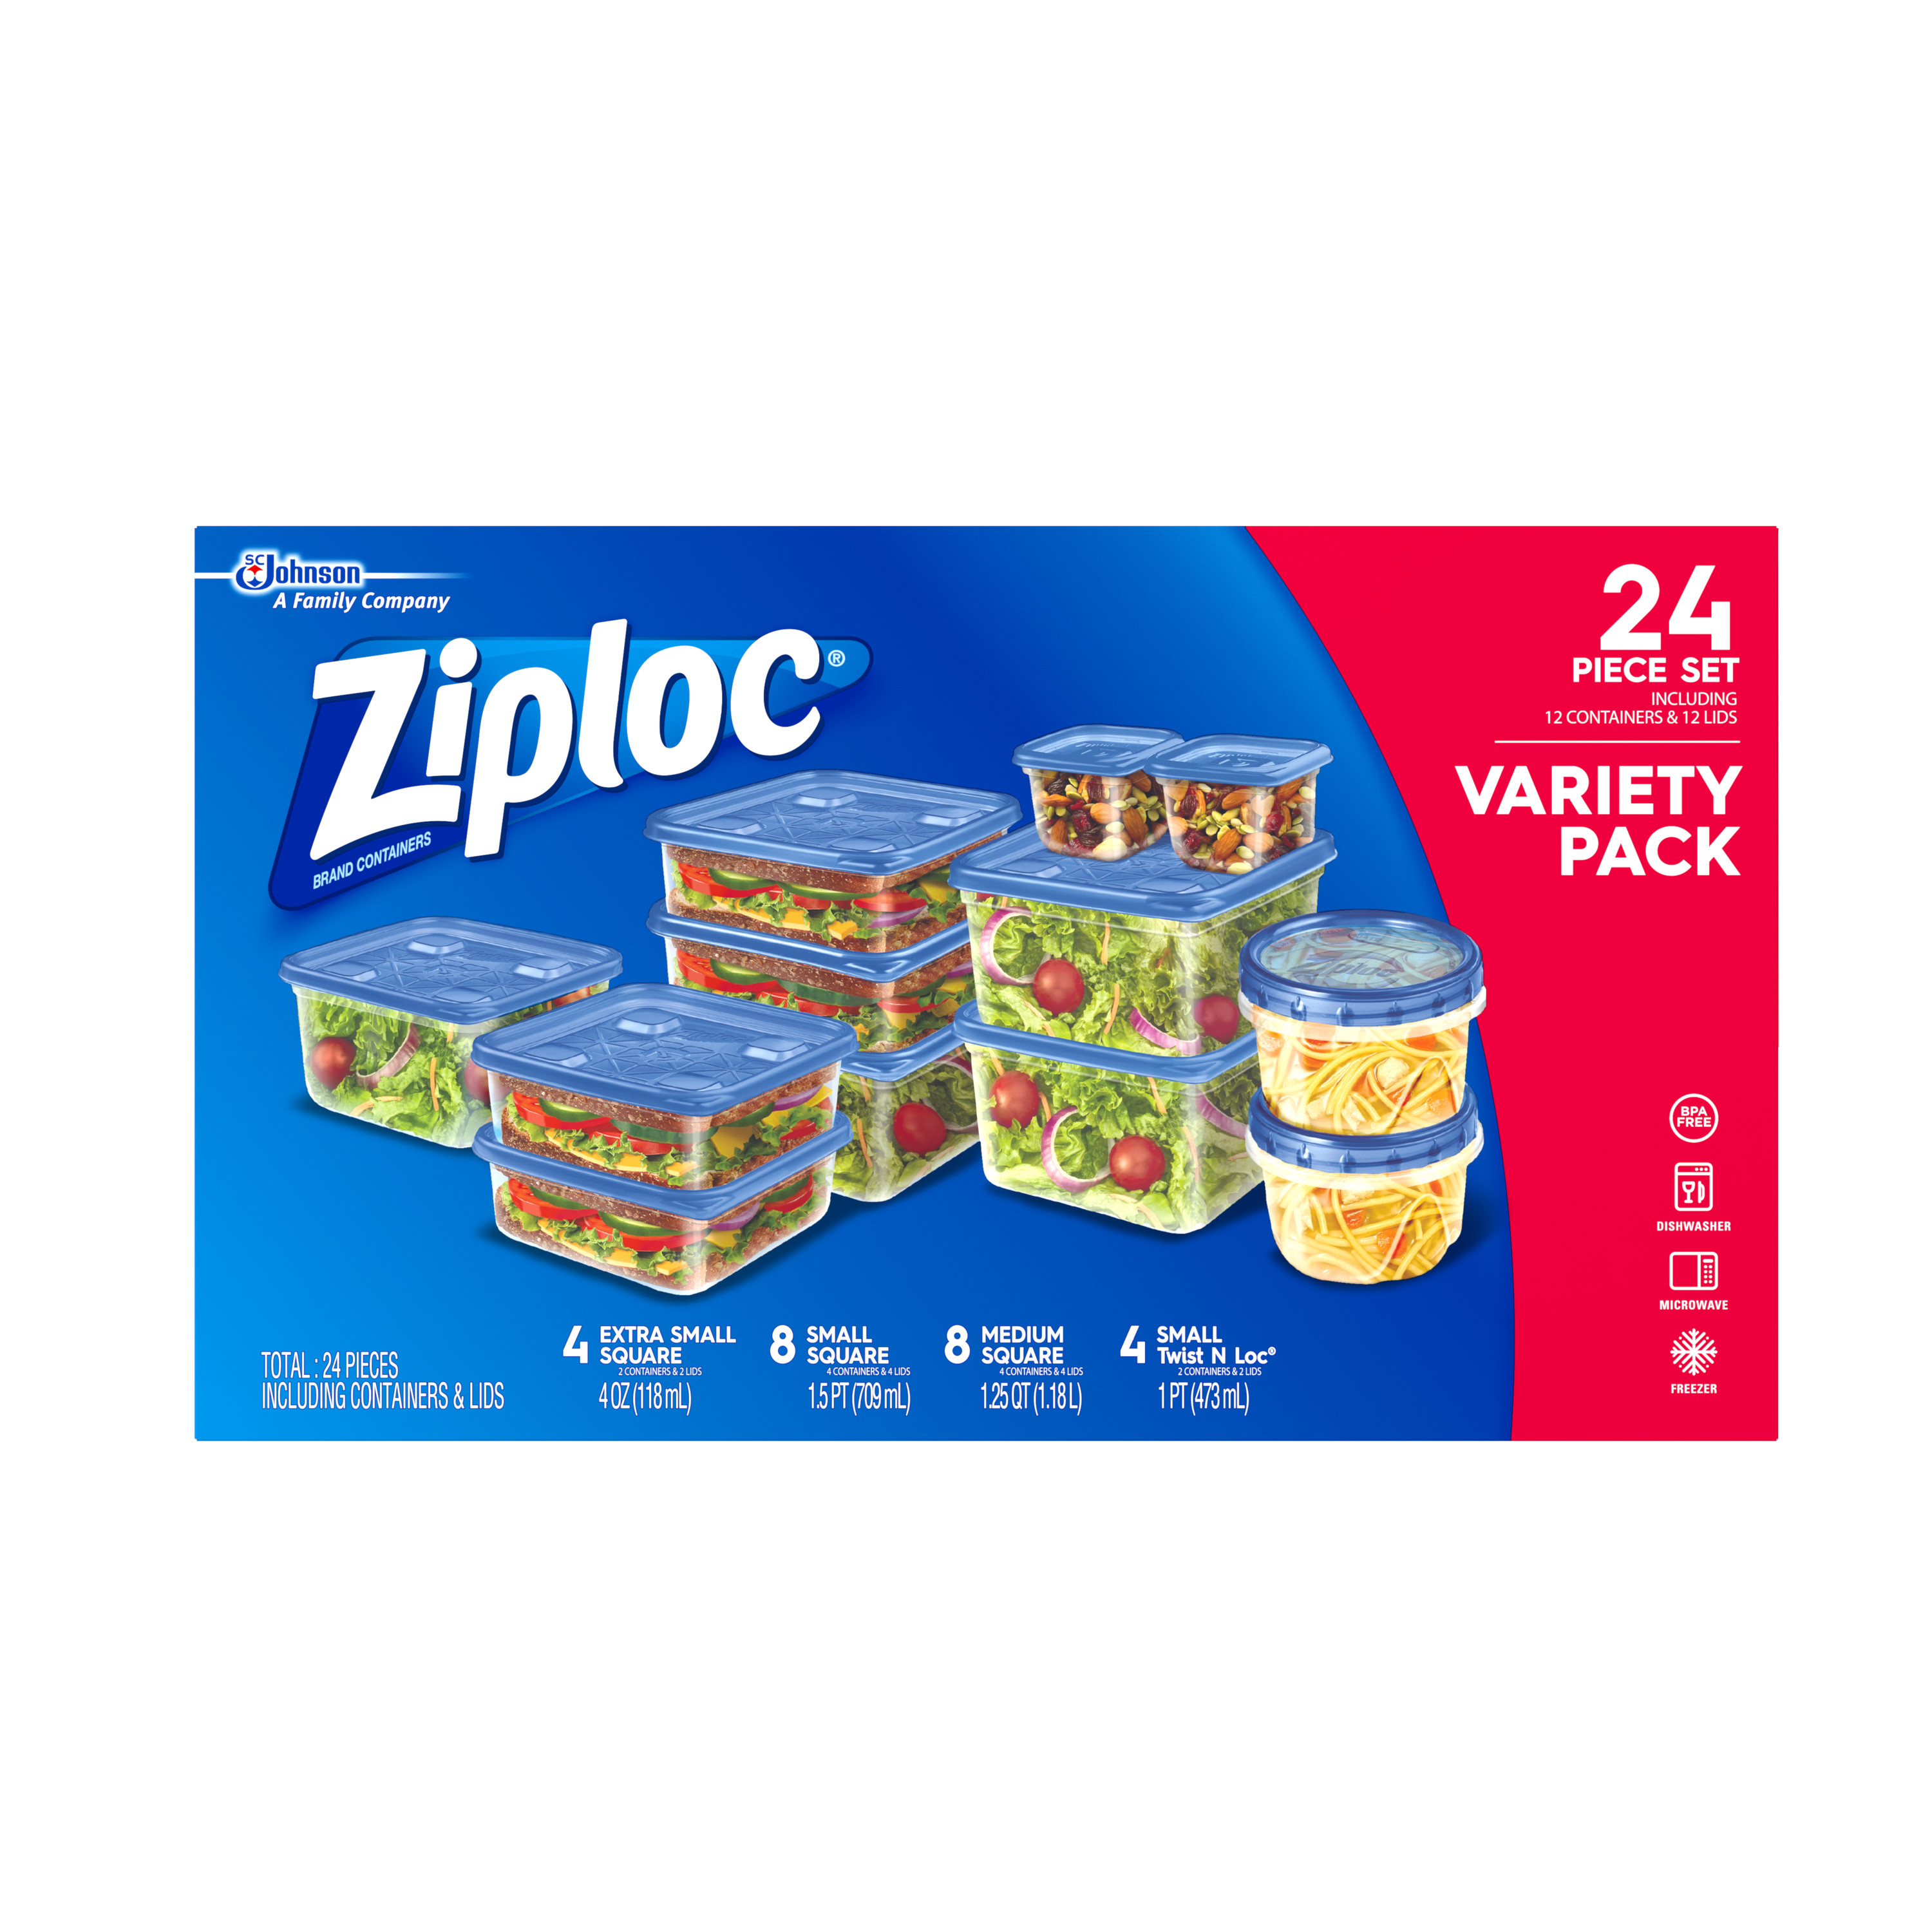 Ziploc Containers Variety Pack, 24 count